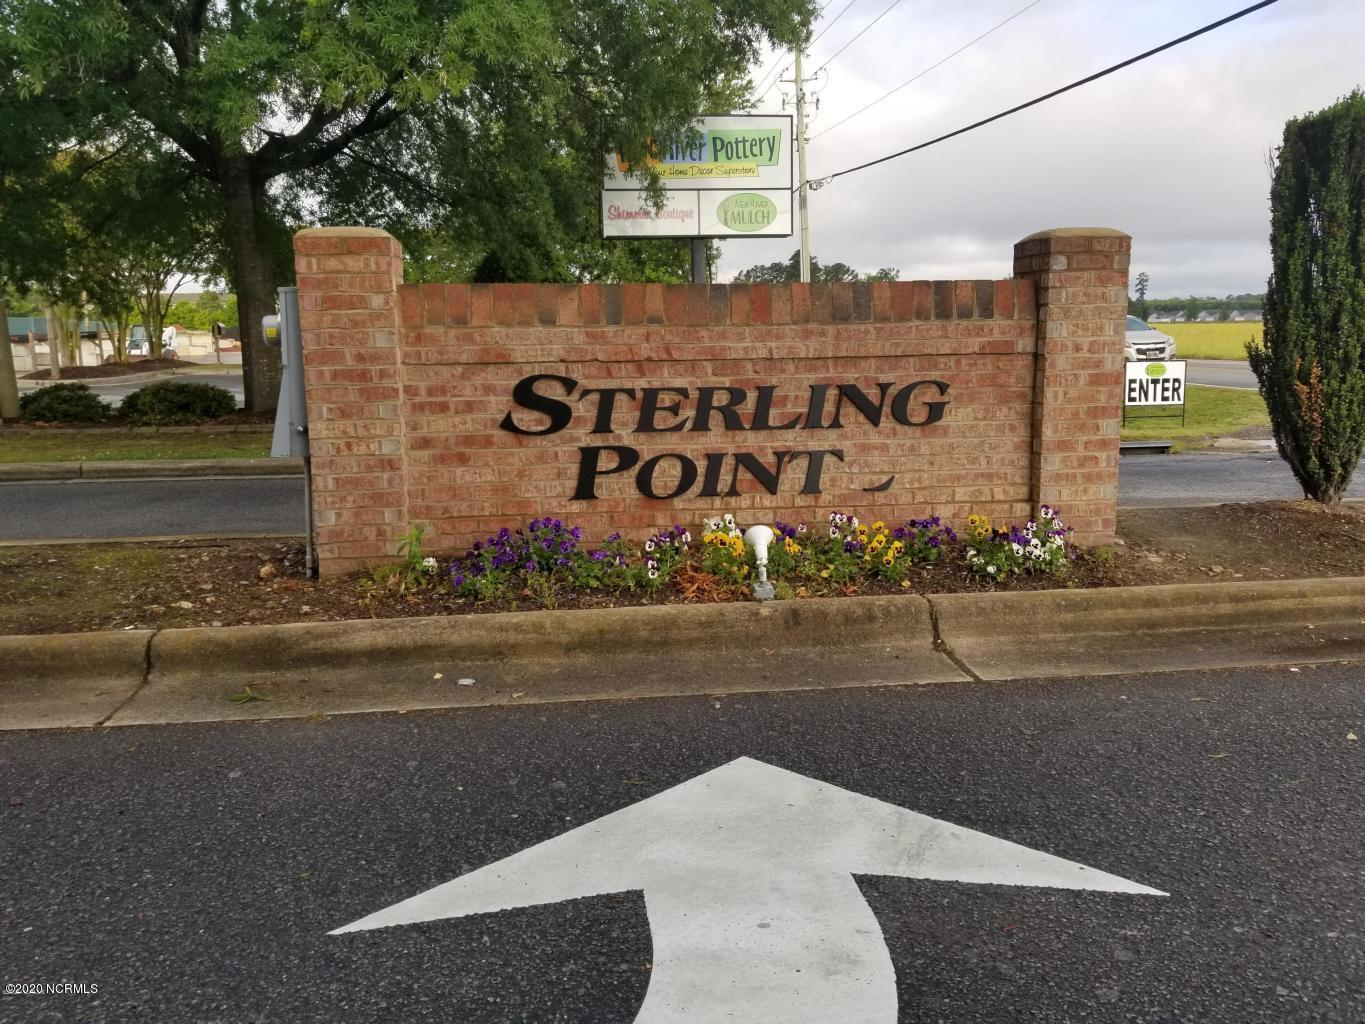 3955 Sterling Pointe Drive, Winterville, North Carolina 28590, 2 Bedrooms Bedrooms, 6 Rooms Rooms,1 BathroomBathrooms,Single family residence,For sale,Sterling Pointe,100219012